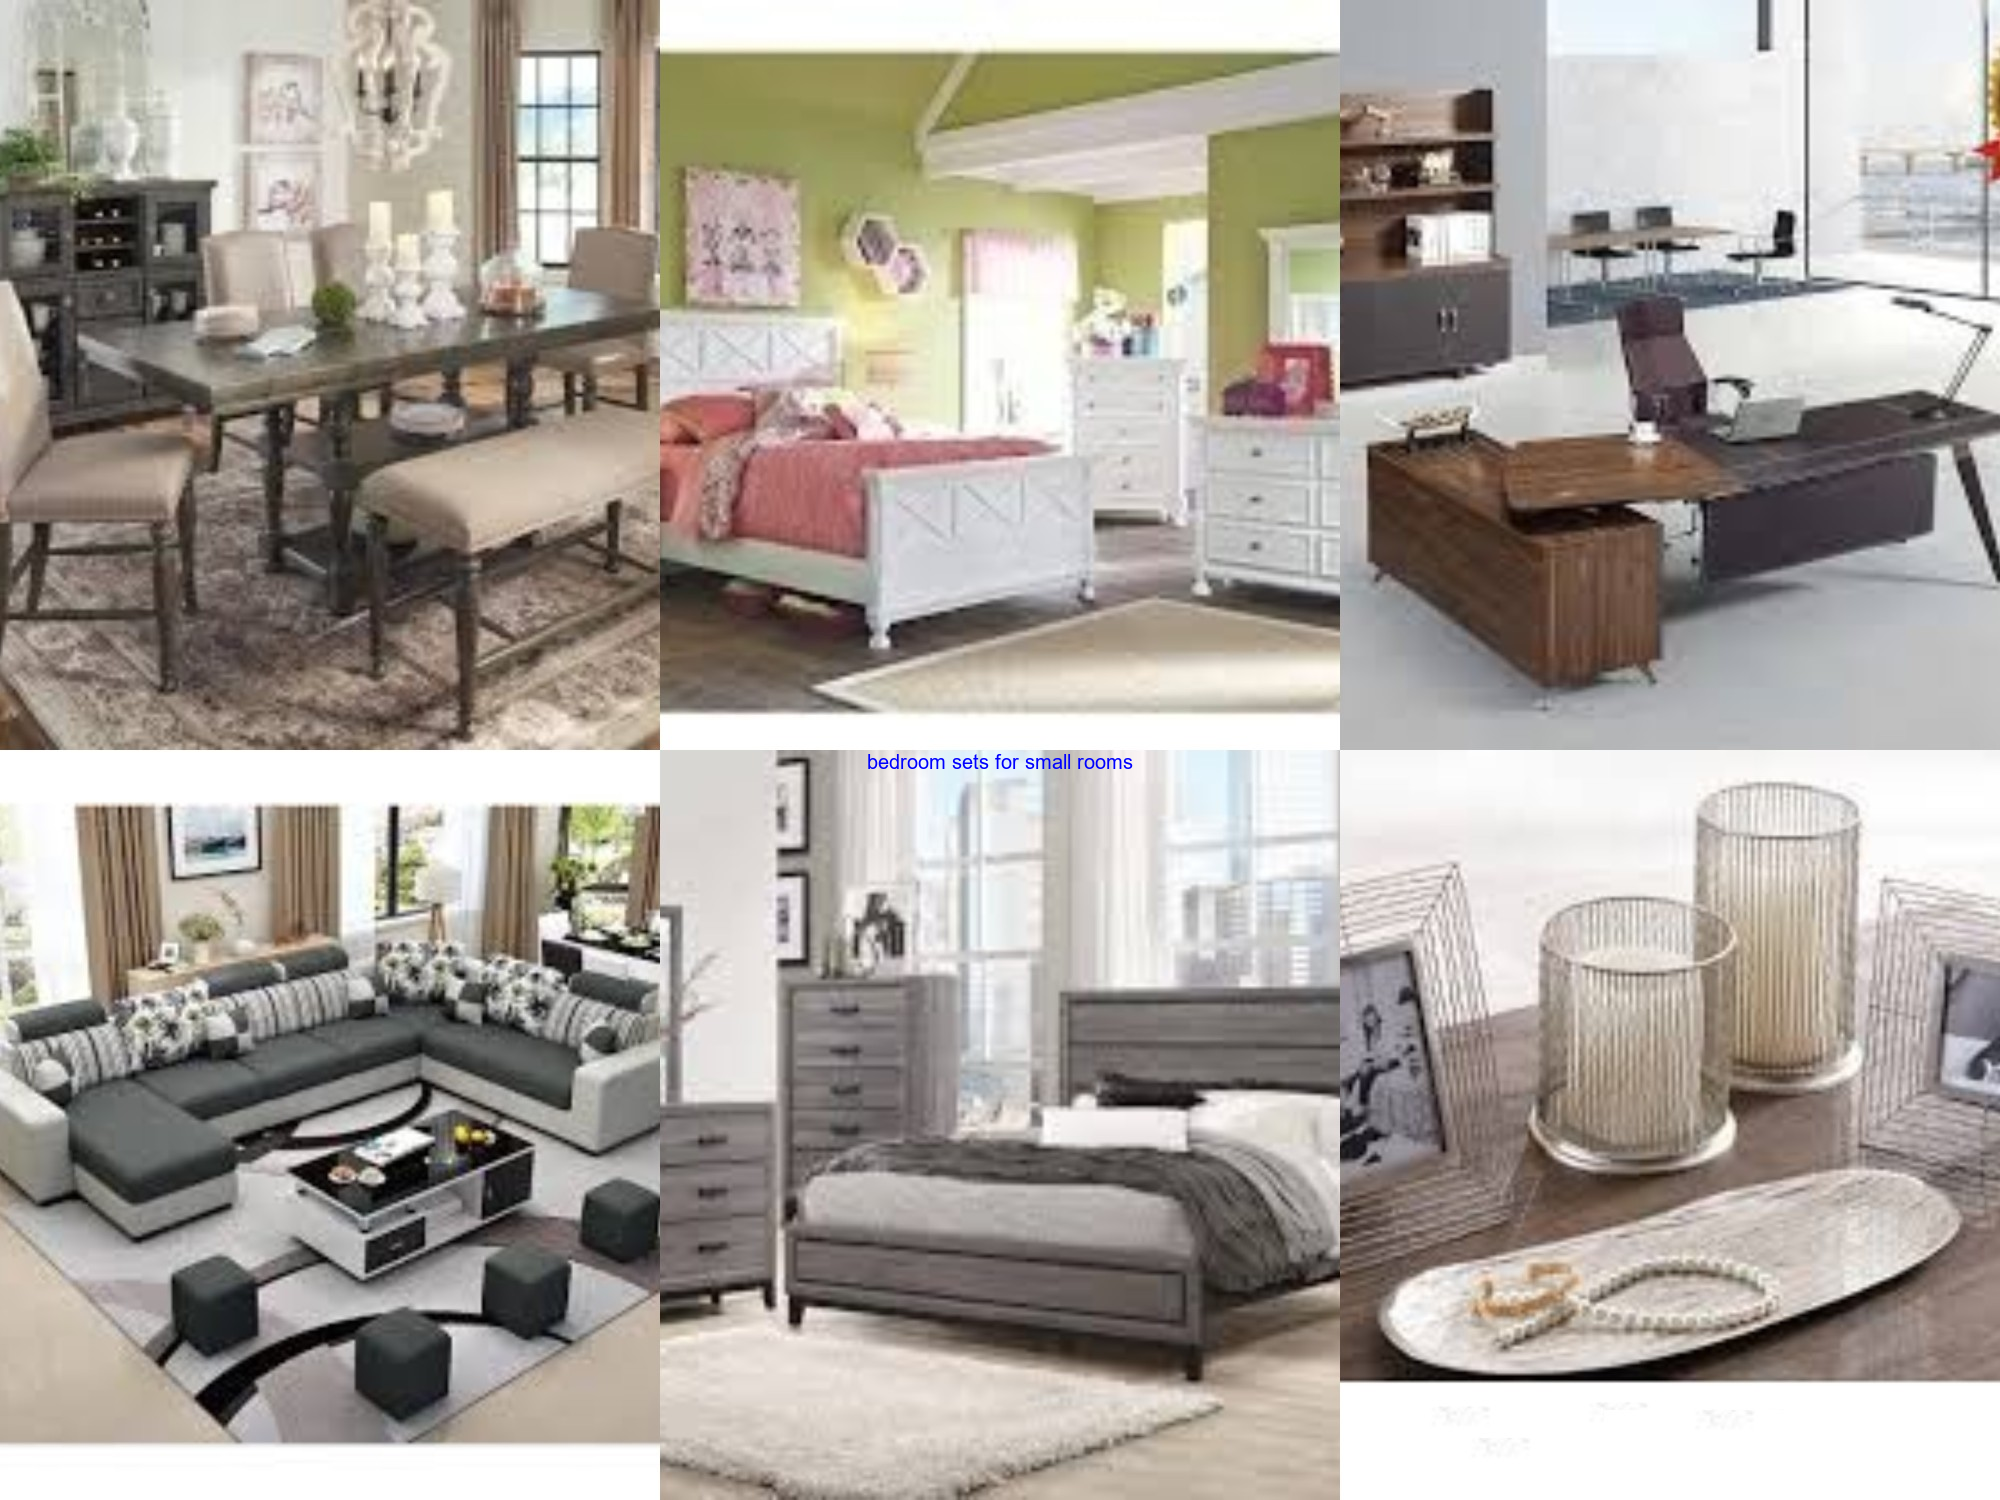 bedroom sets for small rooms 2020